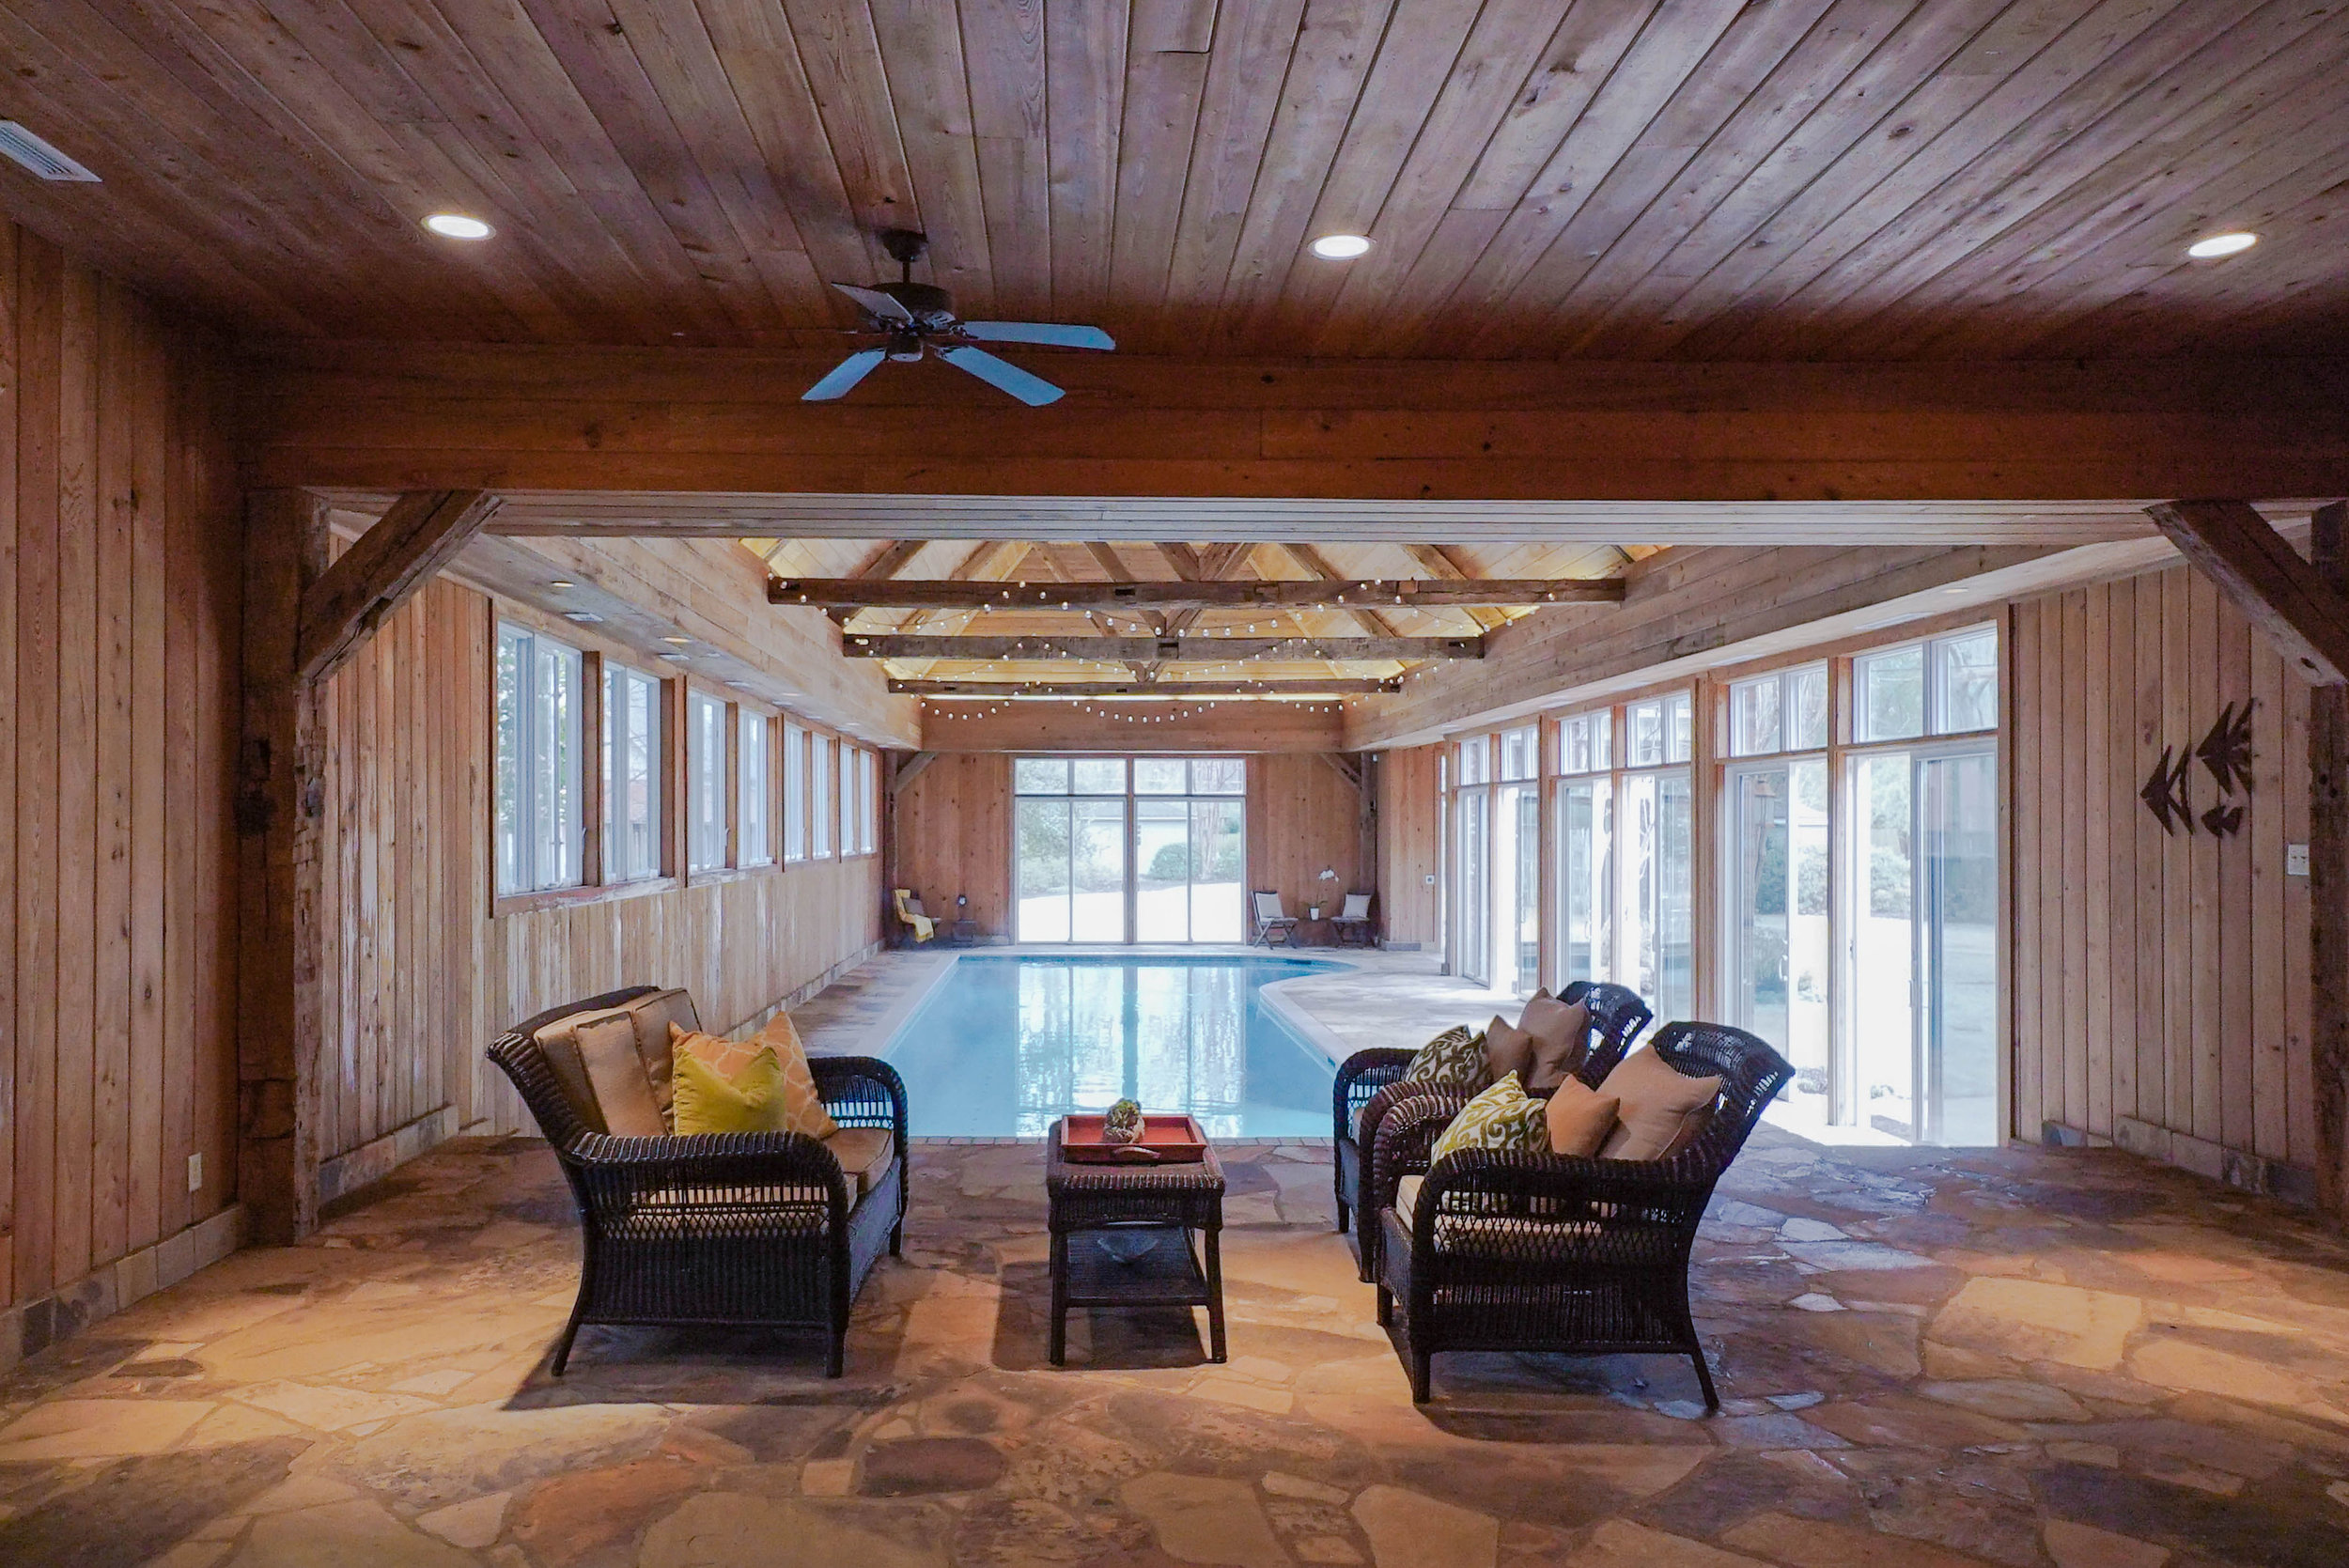 "Low Maintenance pool & spa - Exercise, entertain, and enjoy all year long!""It's a shame you even have to call it an indoor pool. It is so much more than that and is not the smelly 80's sportsplex you may envision when you hear indoor pool."" It has a luxury lodge feel!"